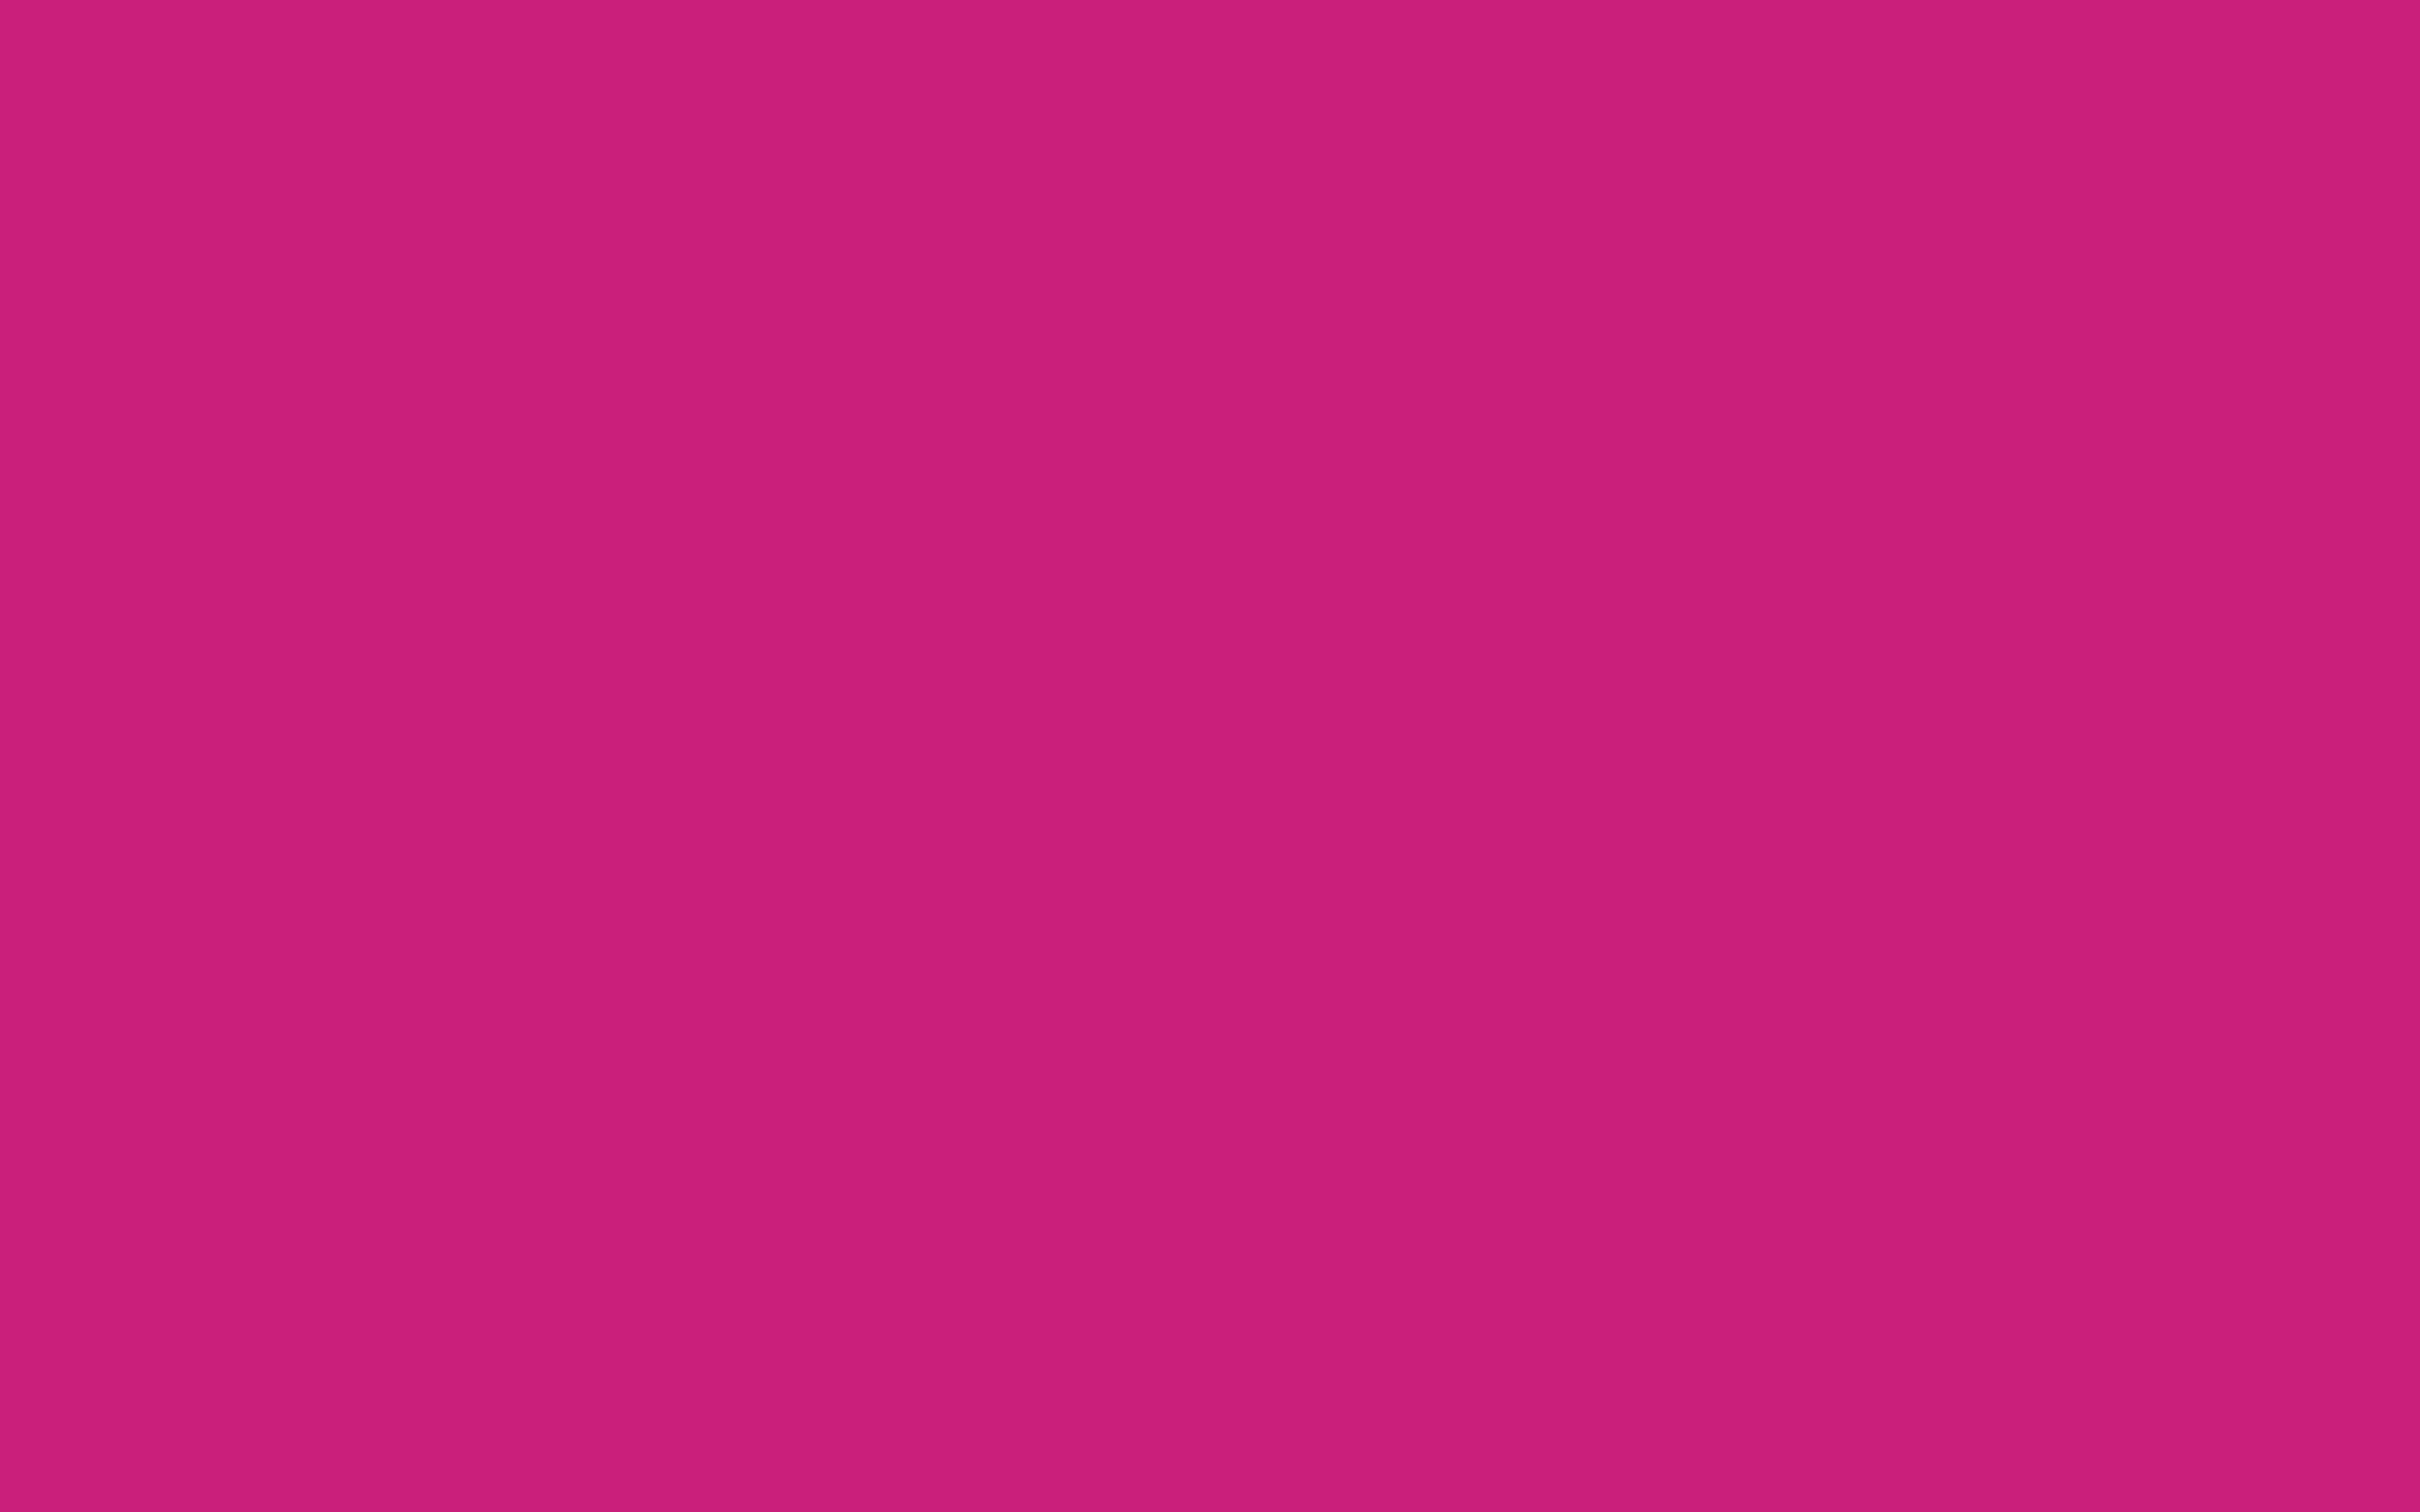 2560x1600 Magenta Dye Solid Color Background